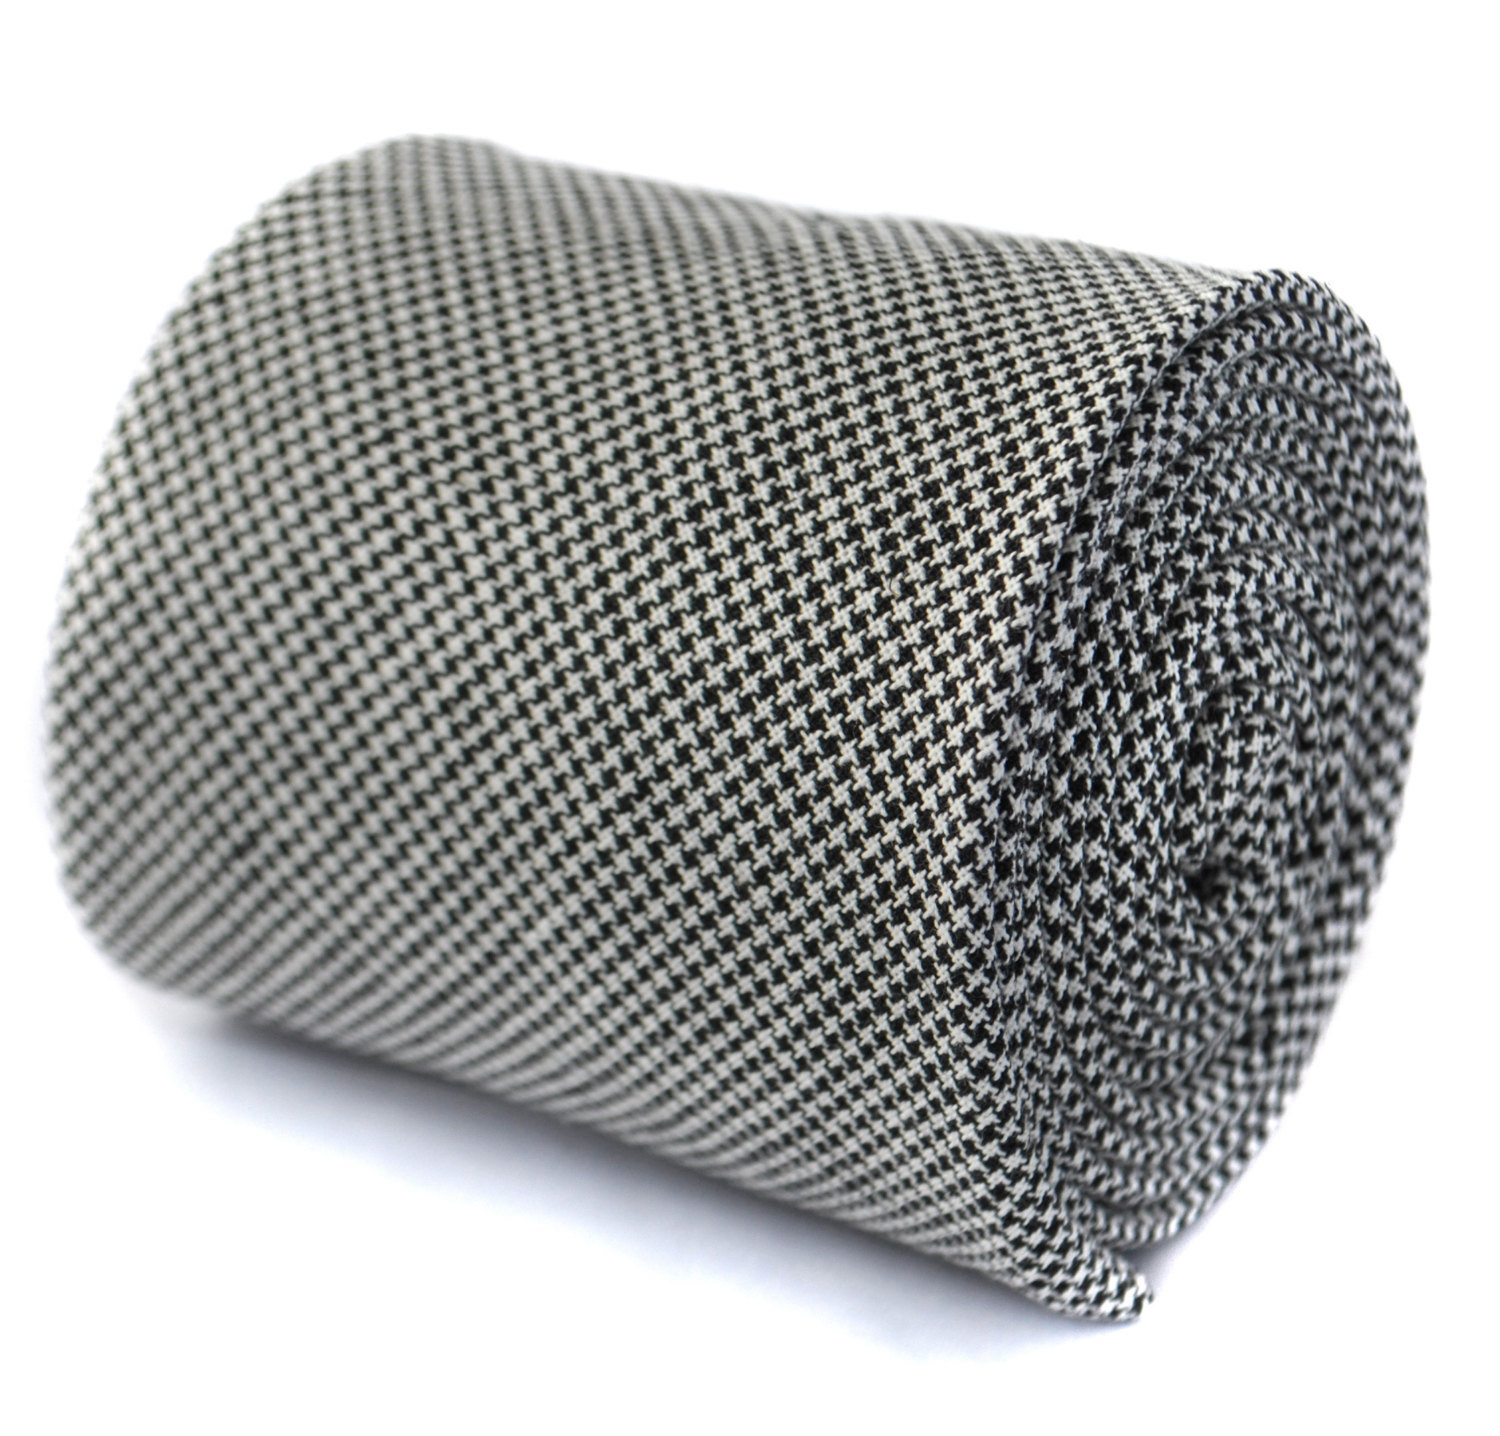 black and white dogstooth wool textured tie 6.5cm by Frederick Thomas FT1975